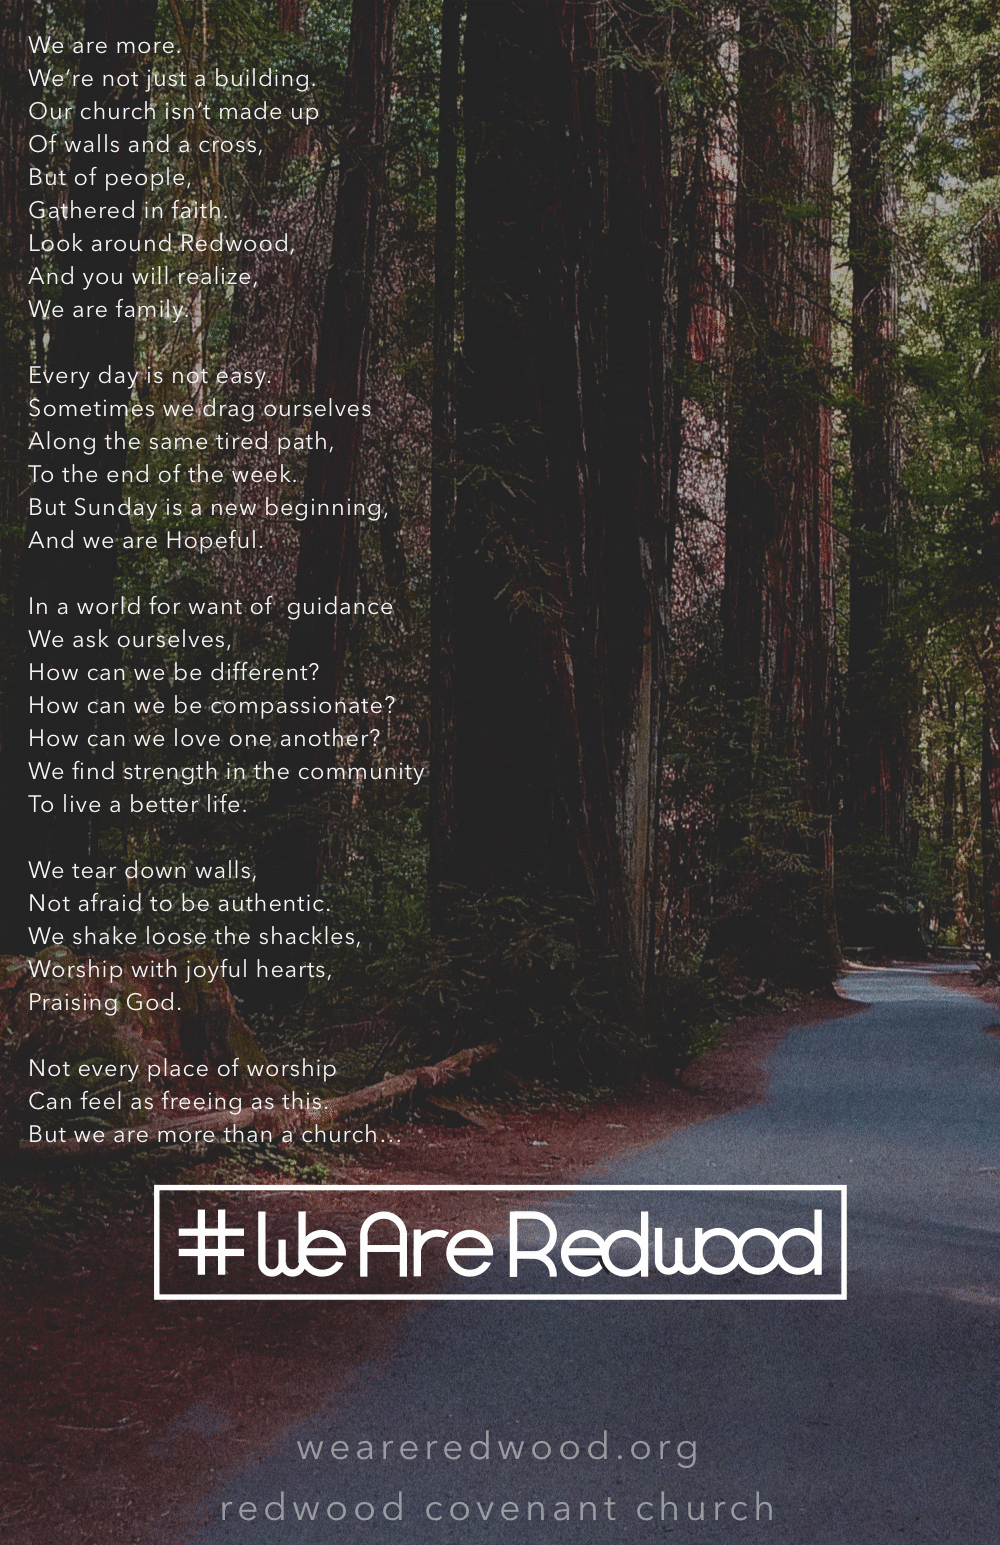 #weareredwood poster and poem